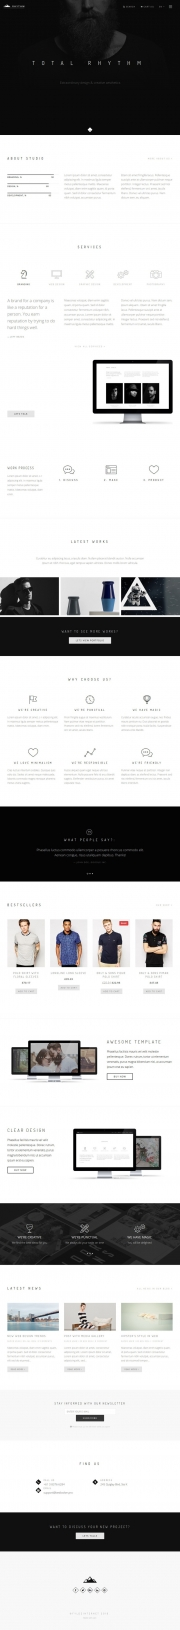 Rhythm - informative e-commerce template